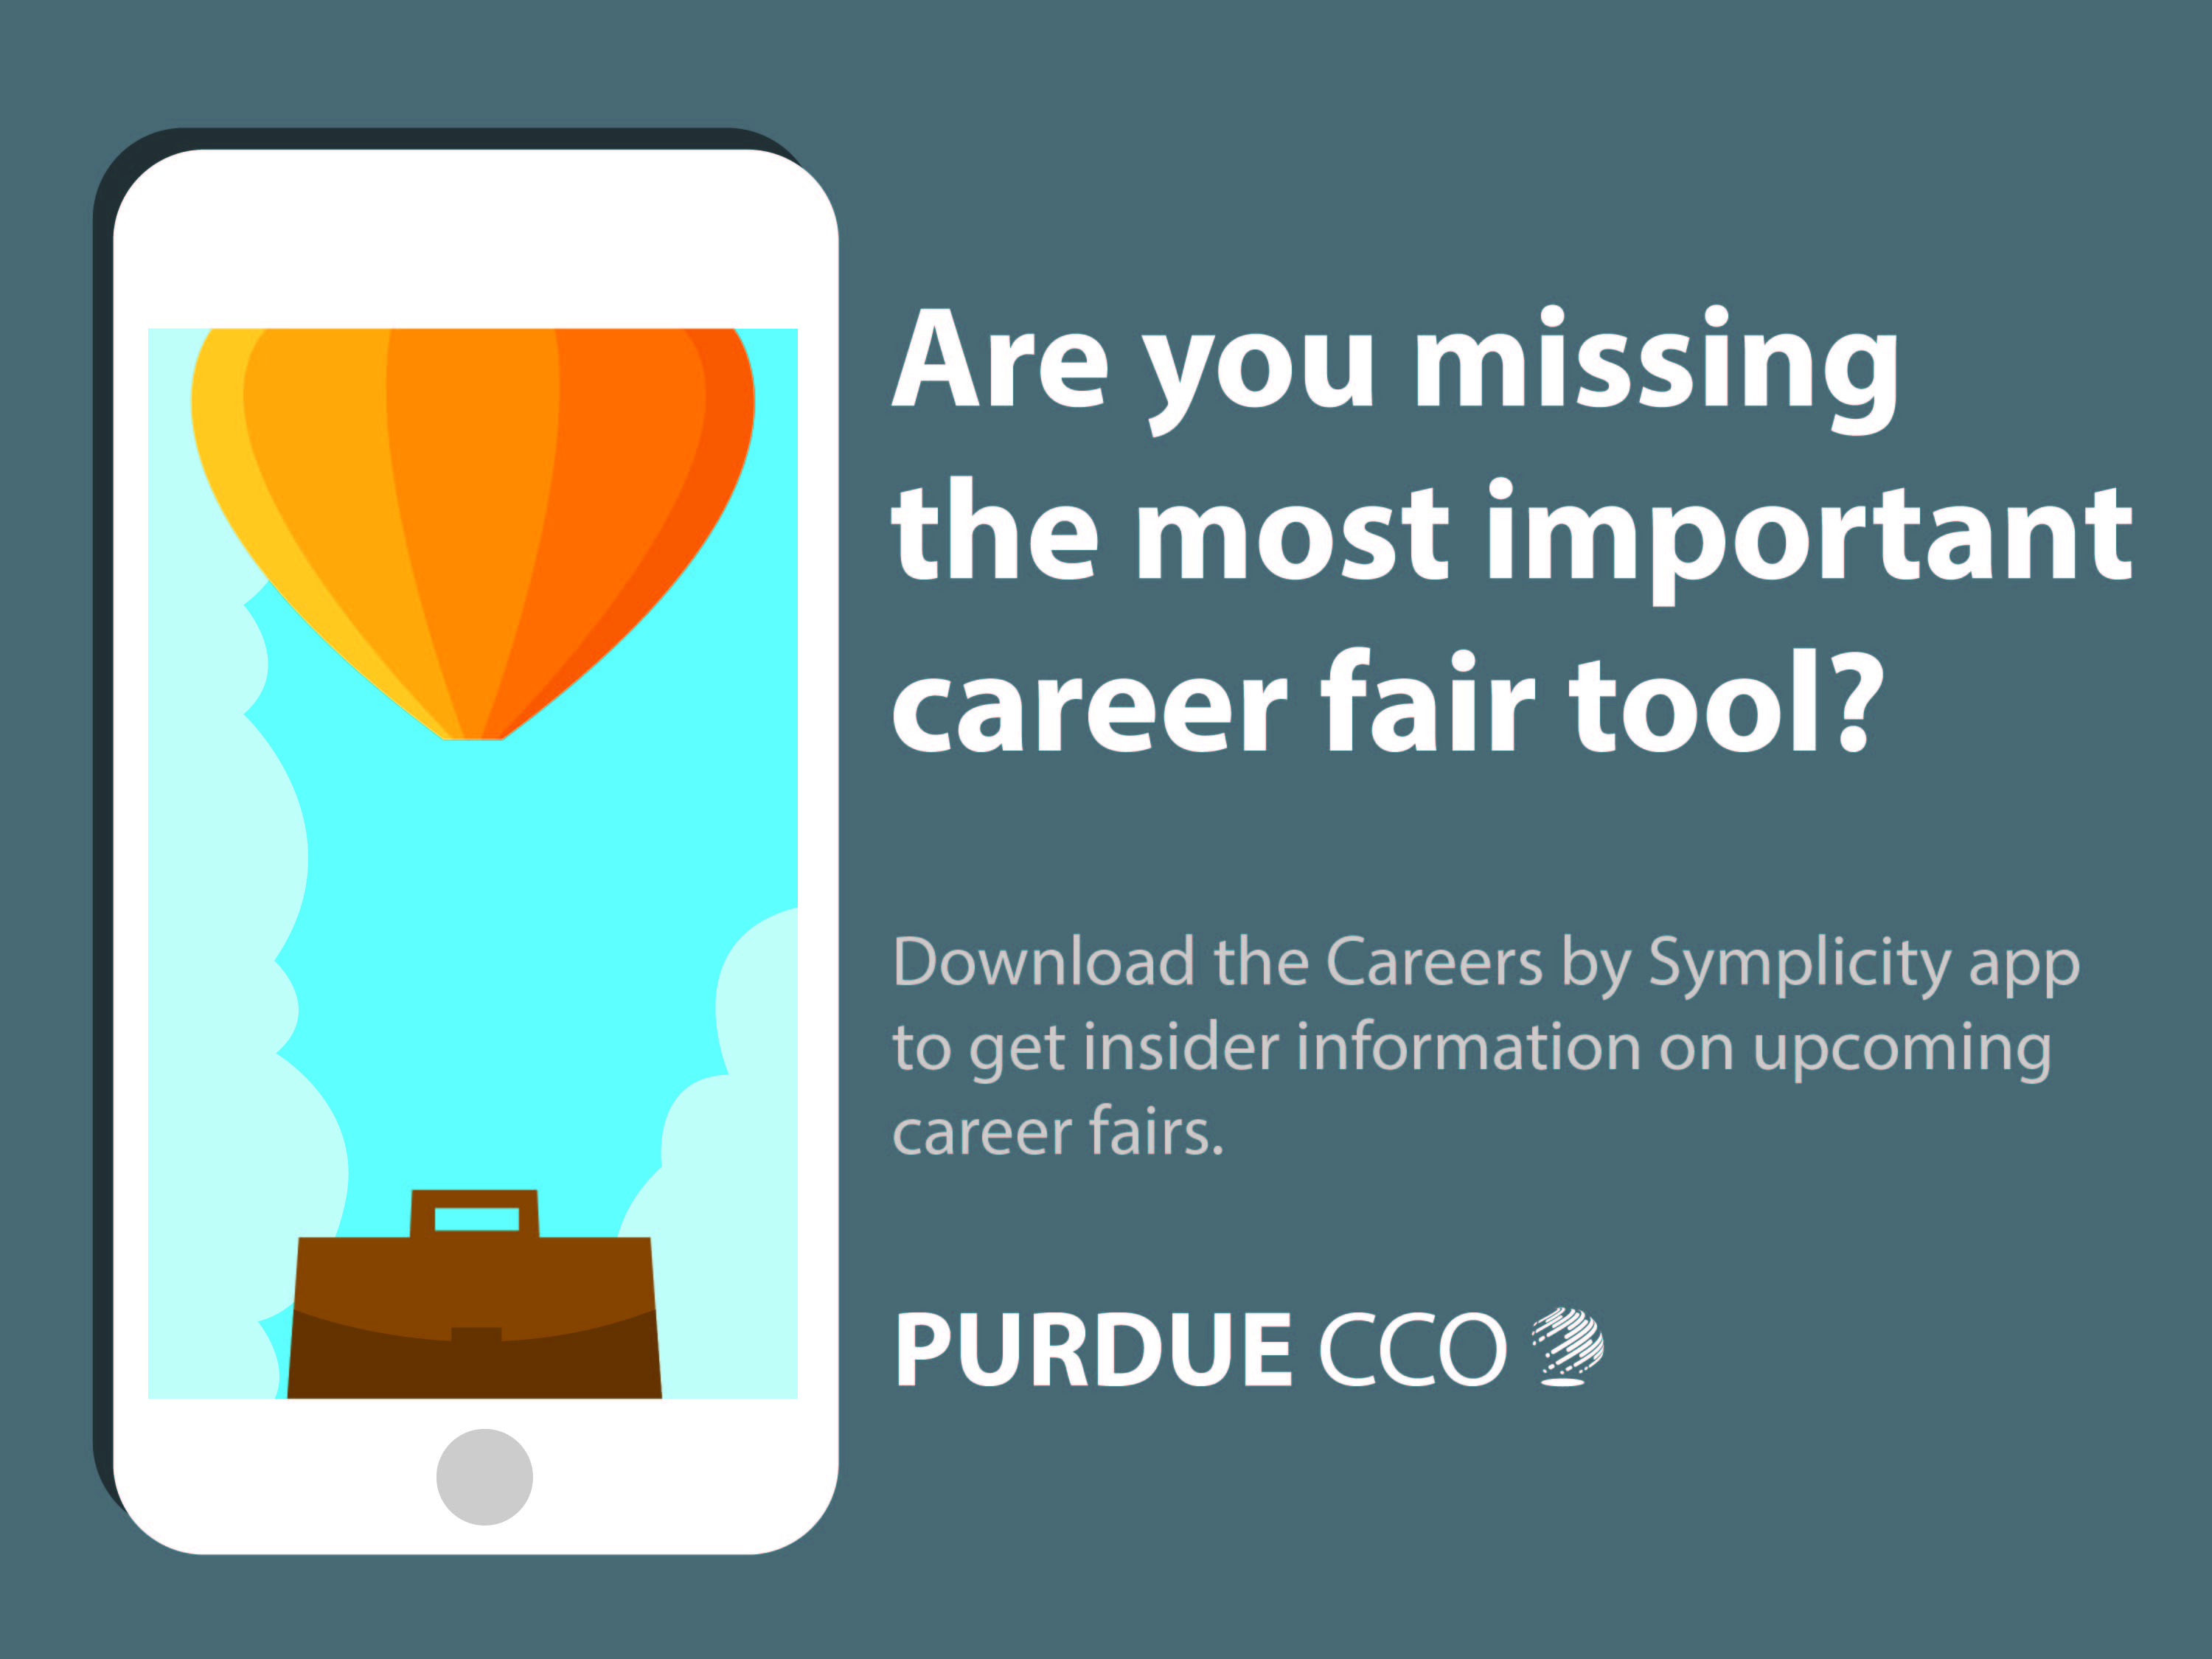 5 to to prepare for the upcoming career fairs purdue app promo marquee corrected 01